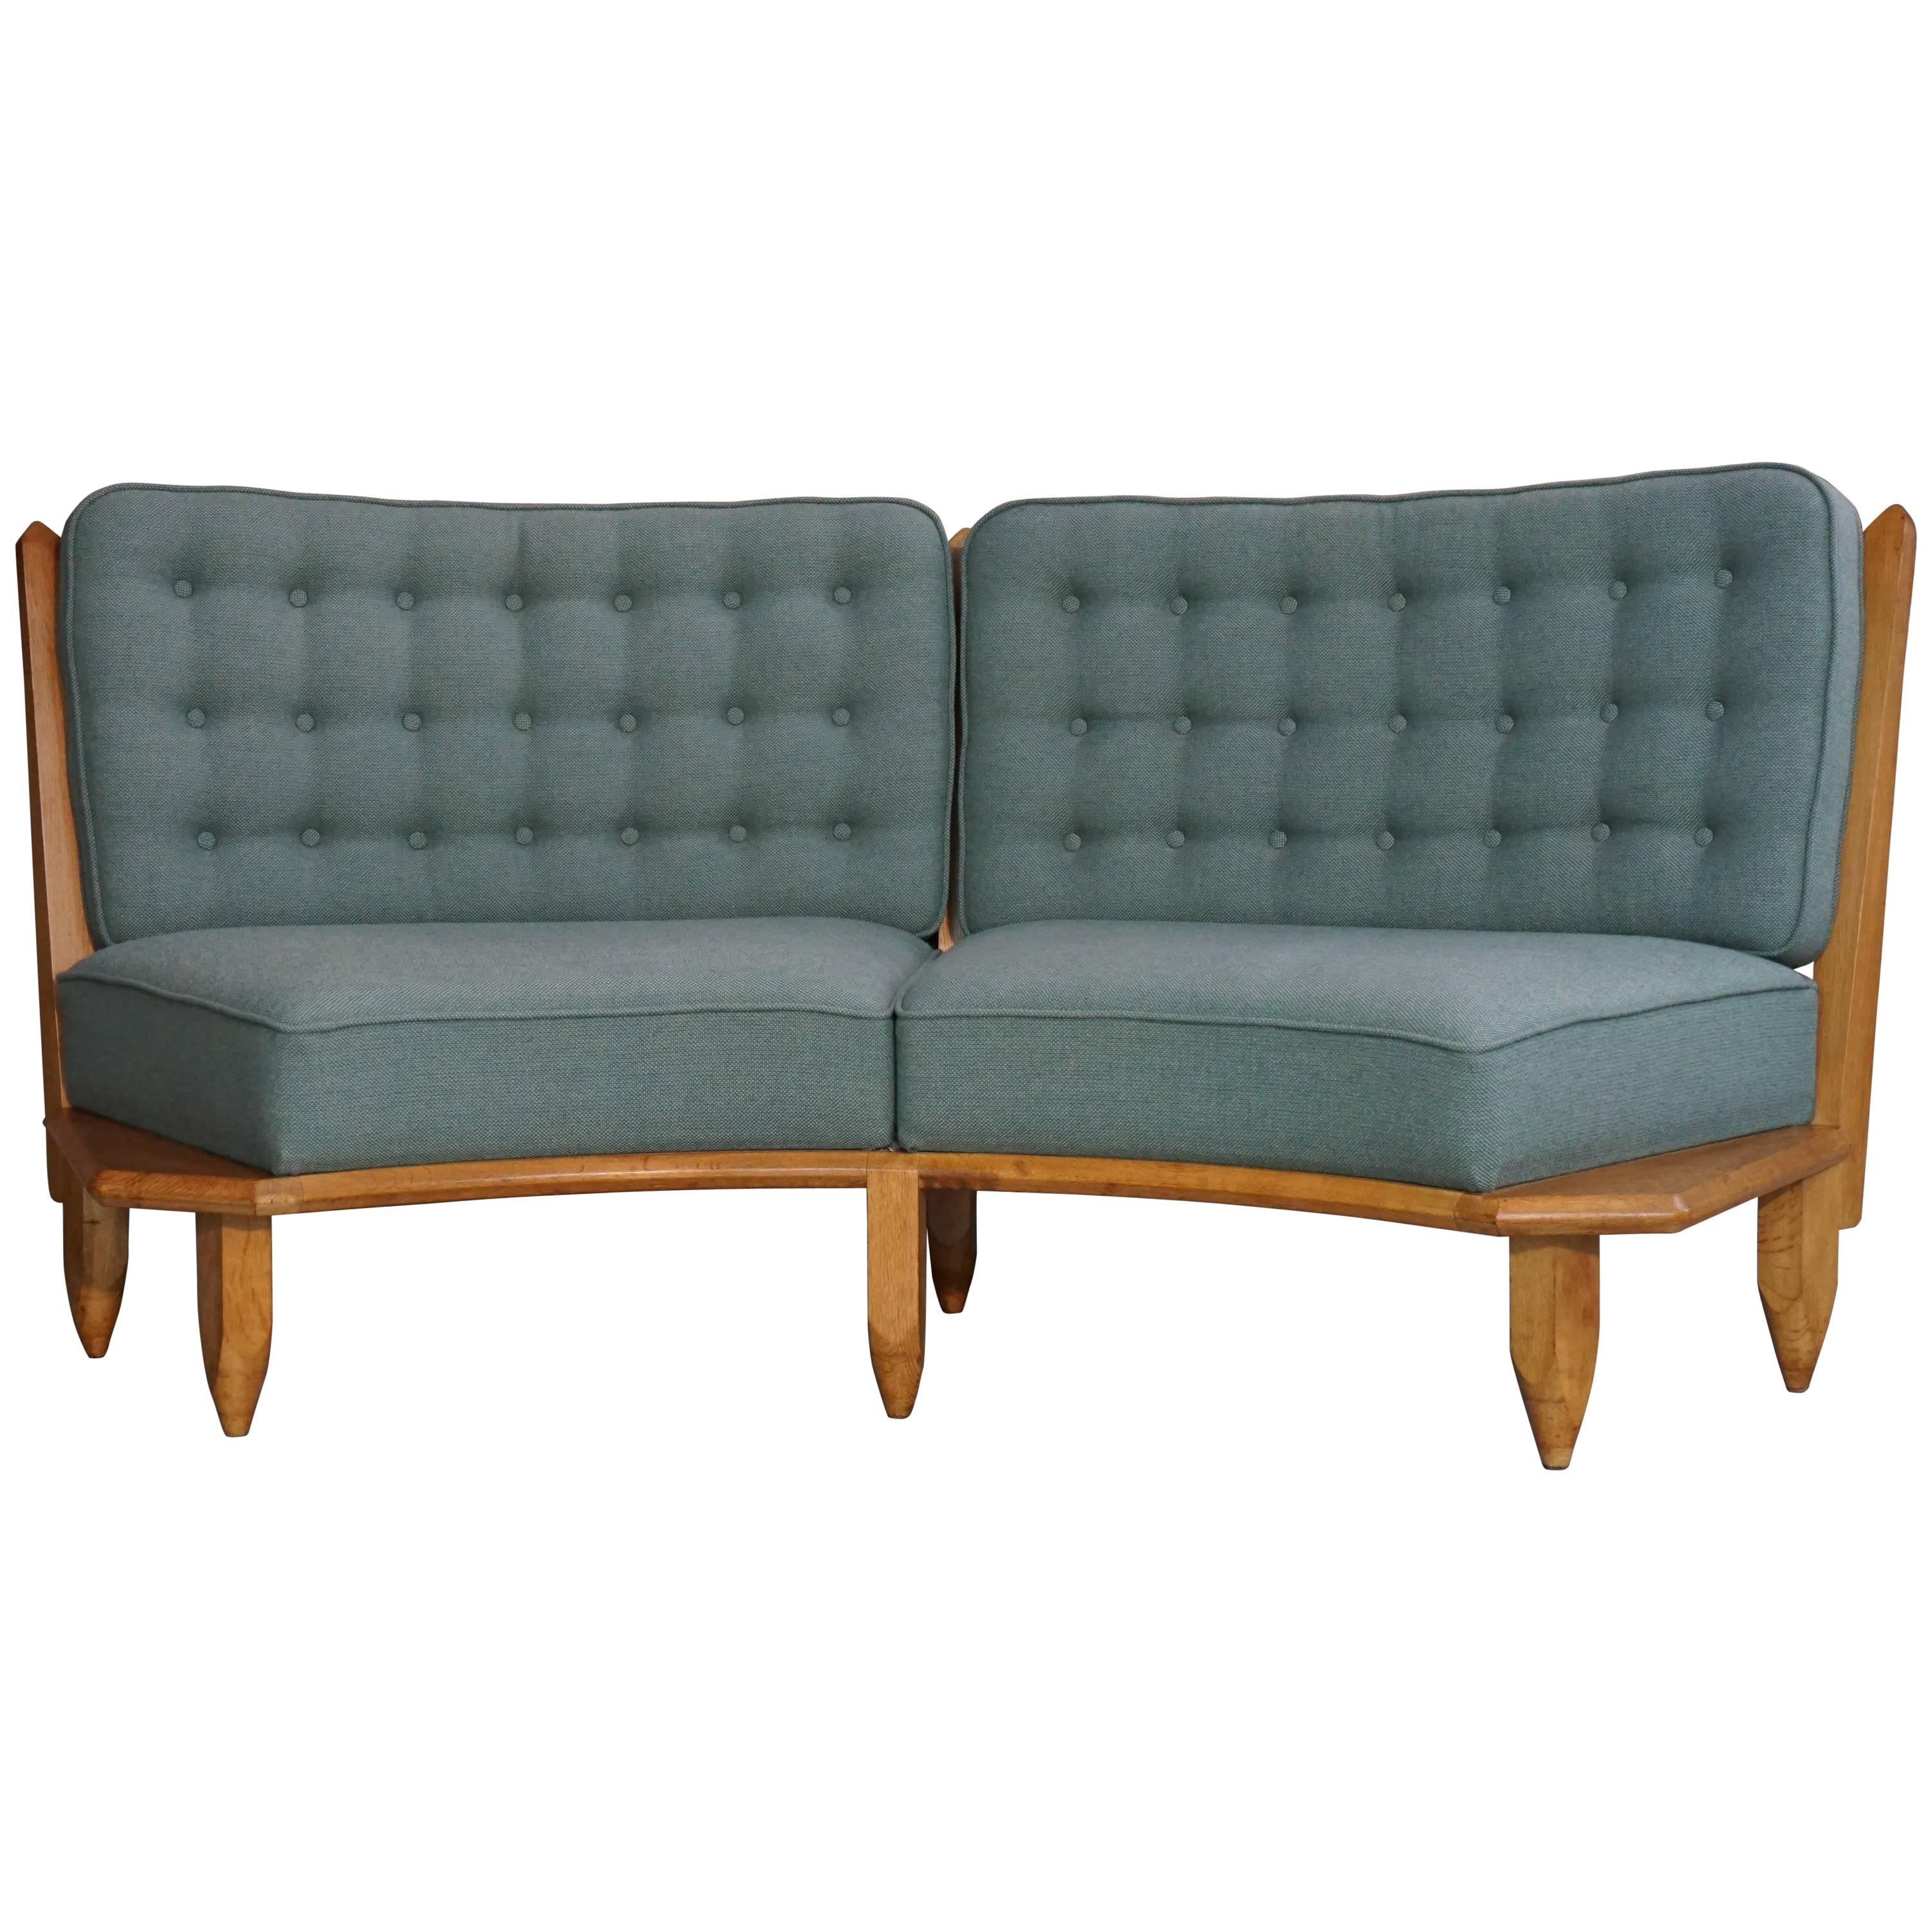 Rounded Basket Sofa French Design Of The 1950s By Guillerme And Chambron  For Sale